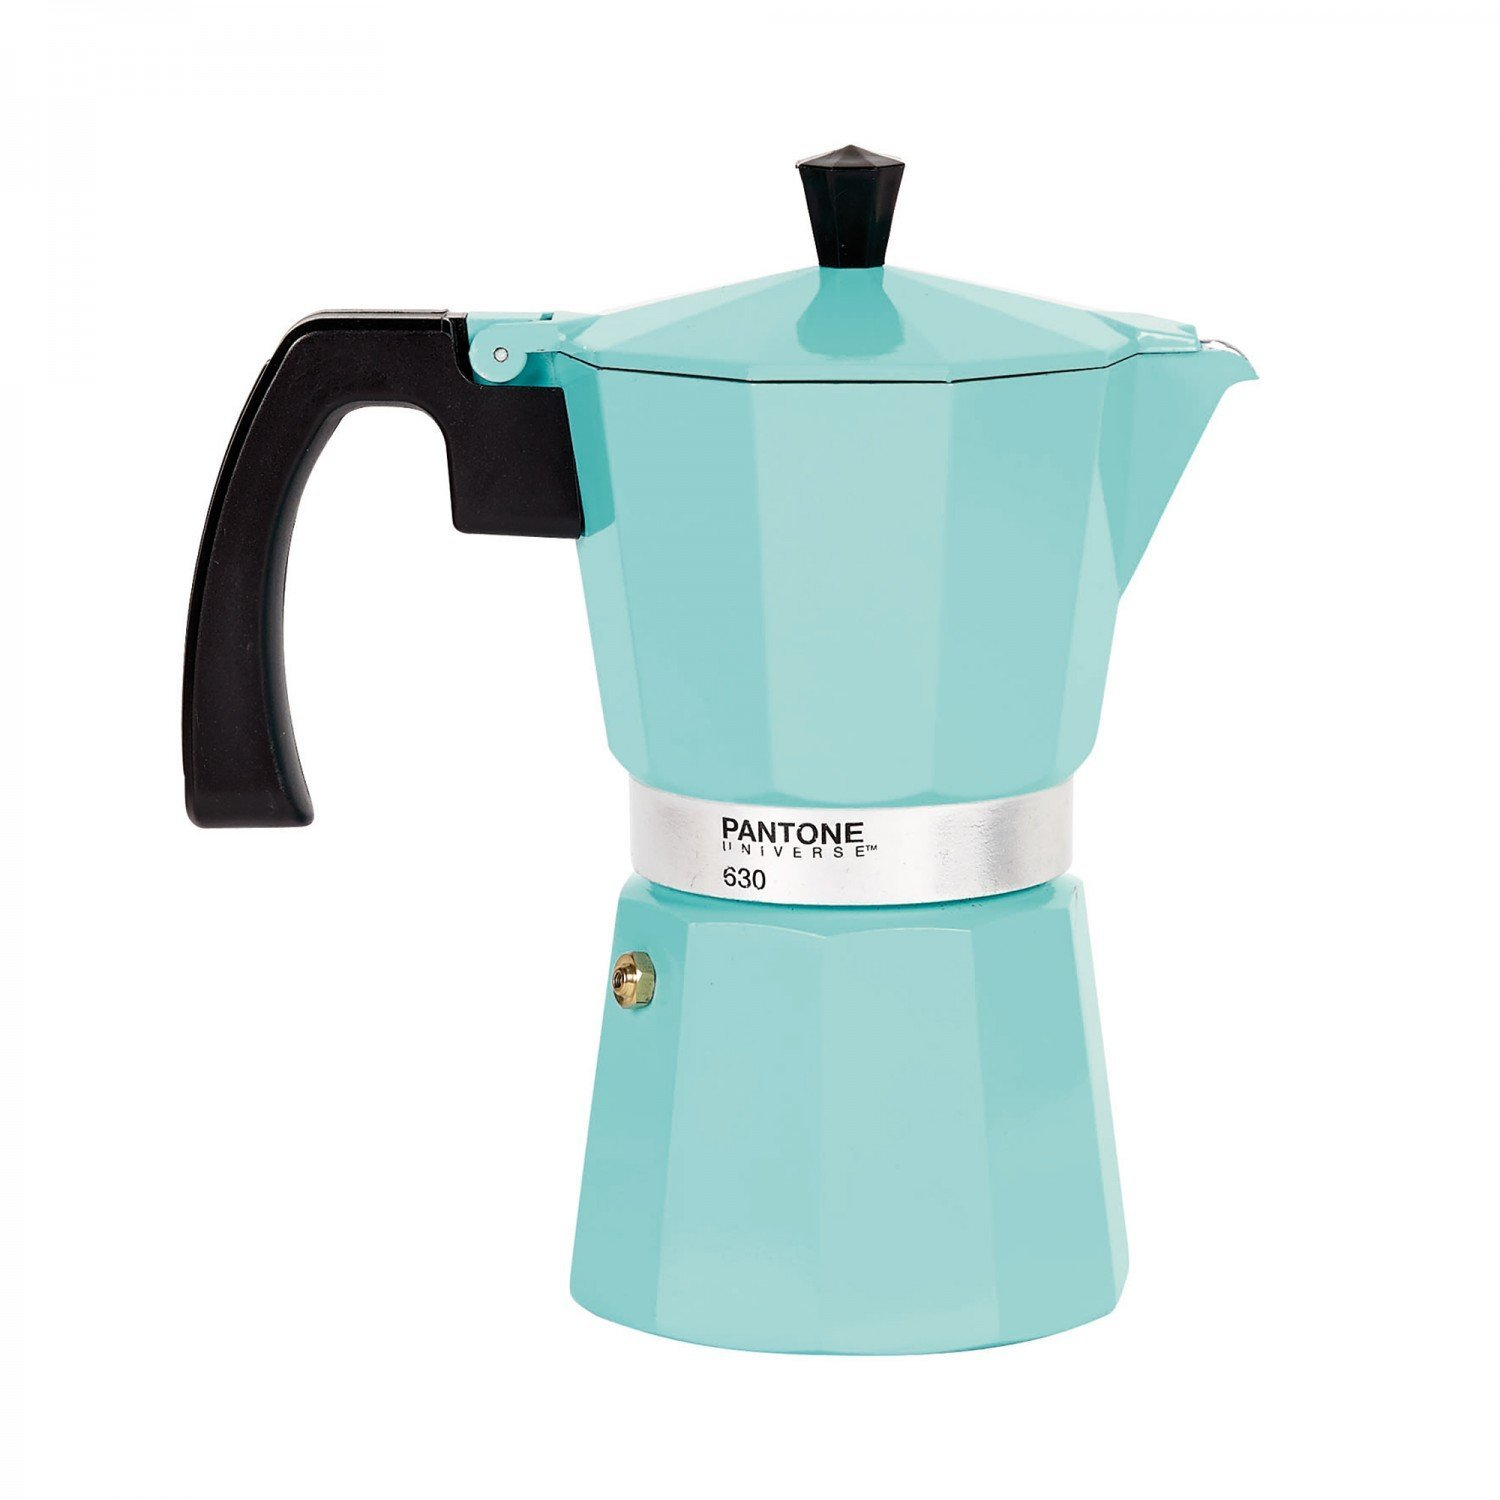 Pantone Coffee Maker How To Use : Mint Colored Kitchen - Panda s House